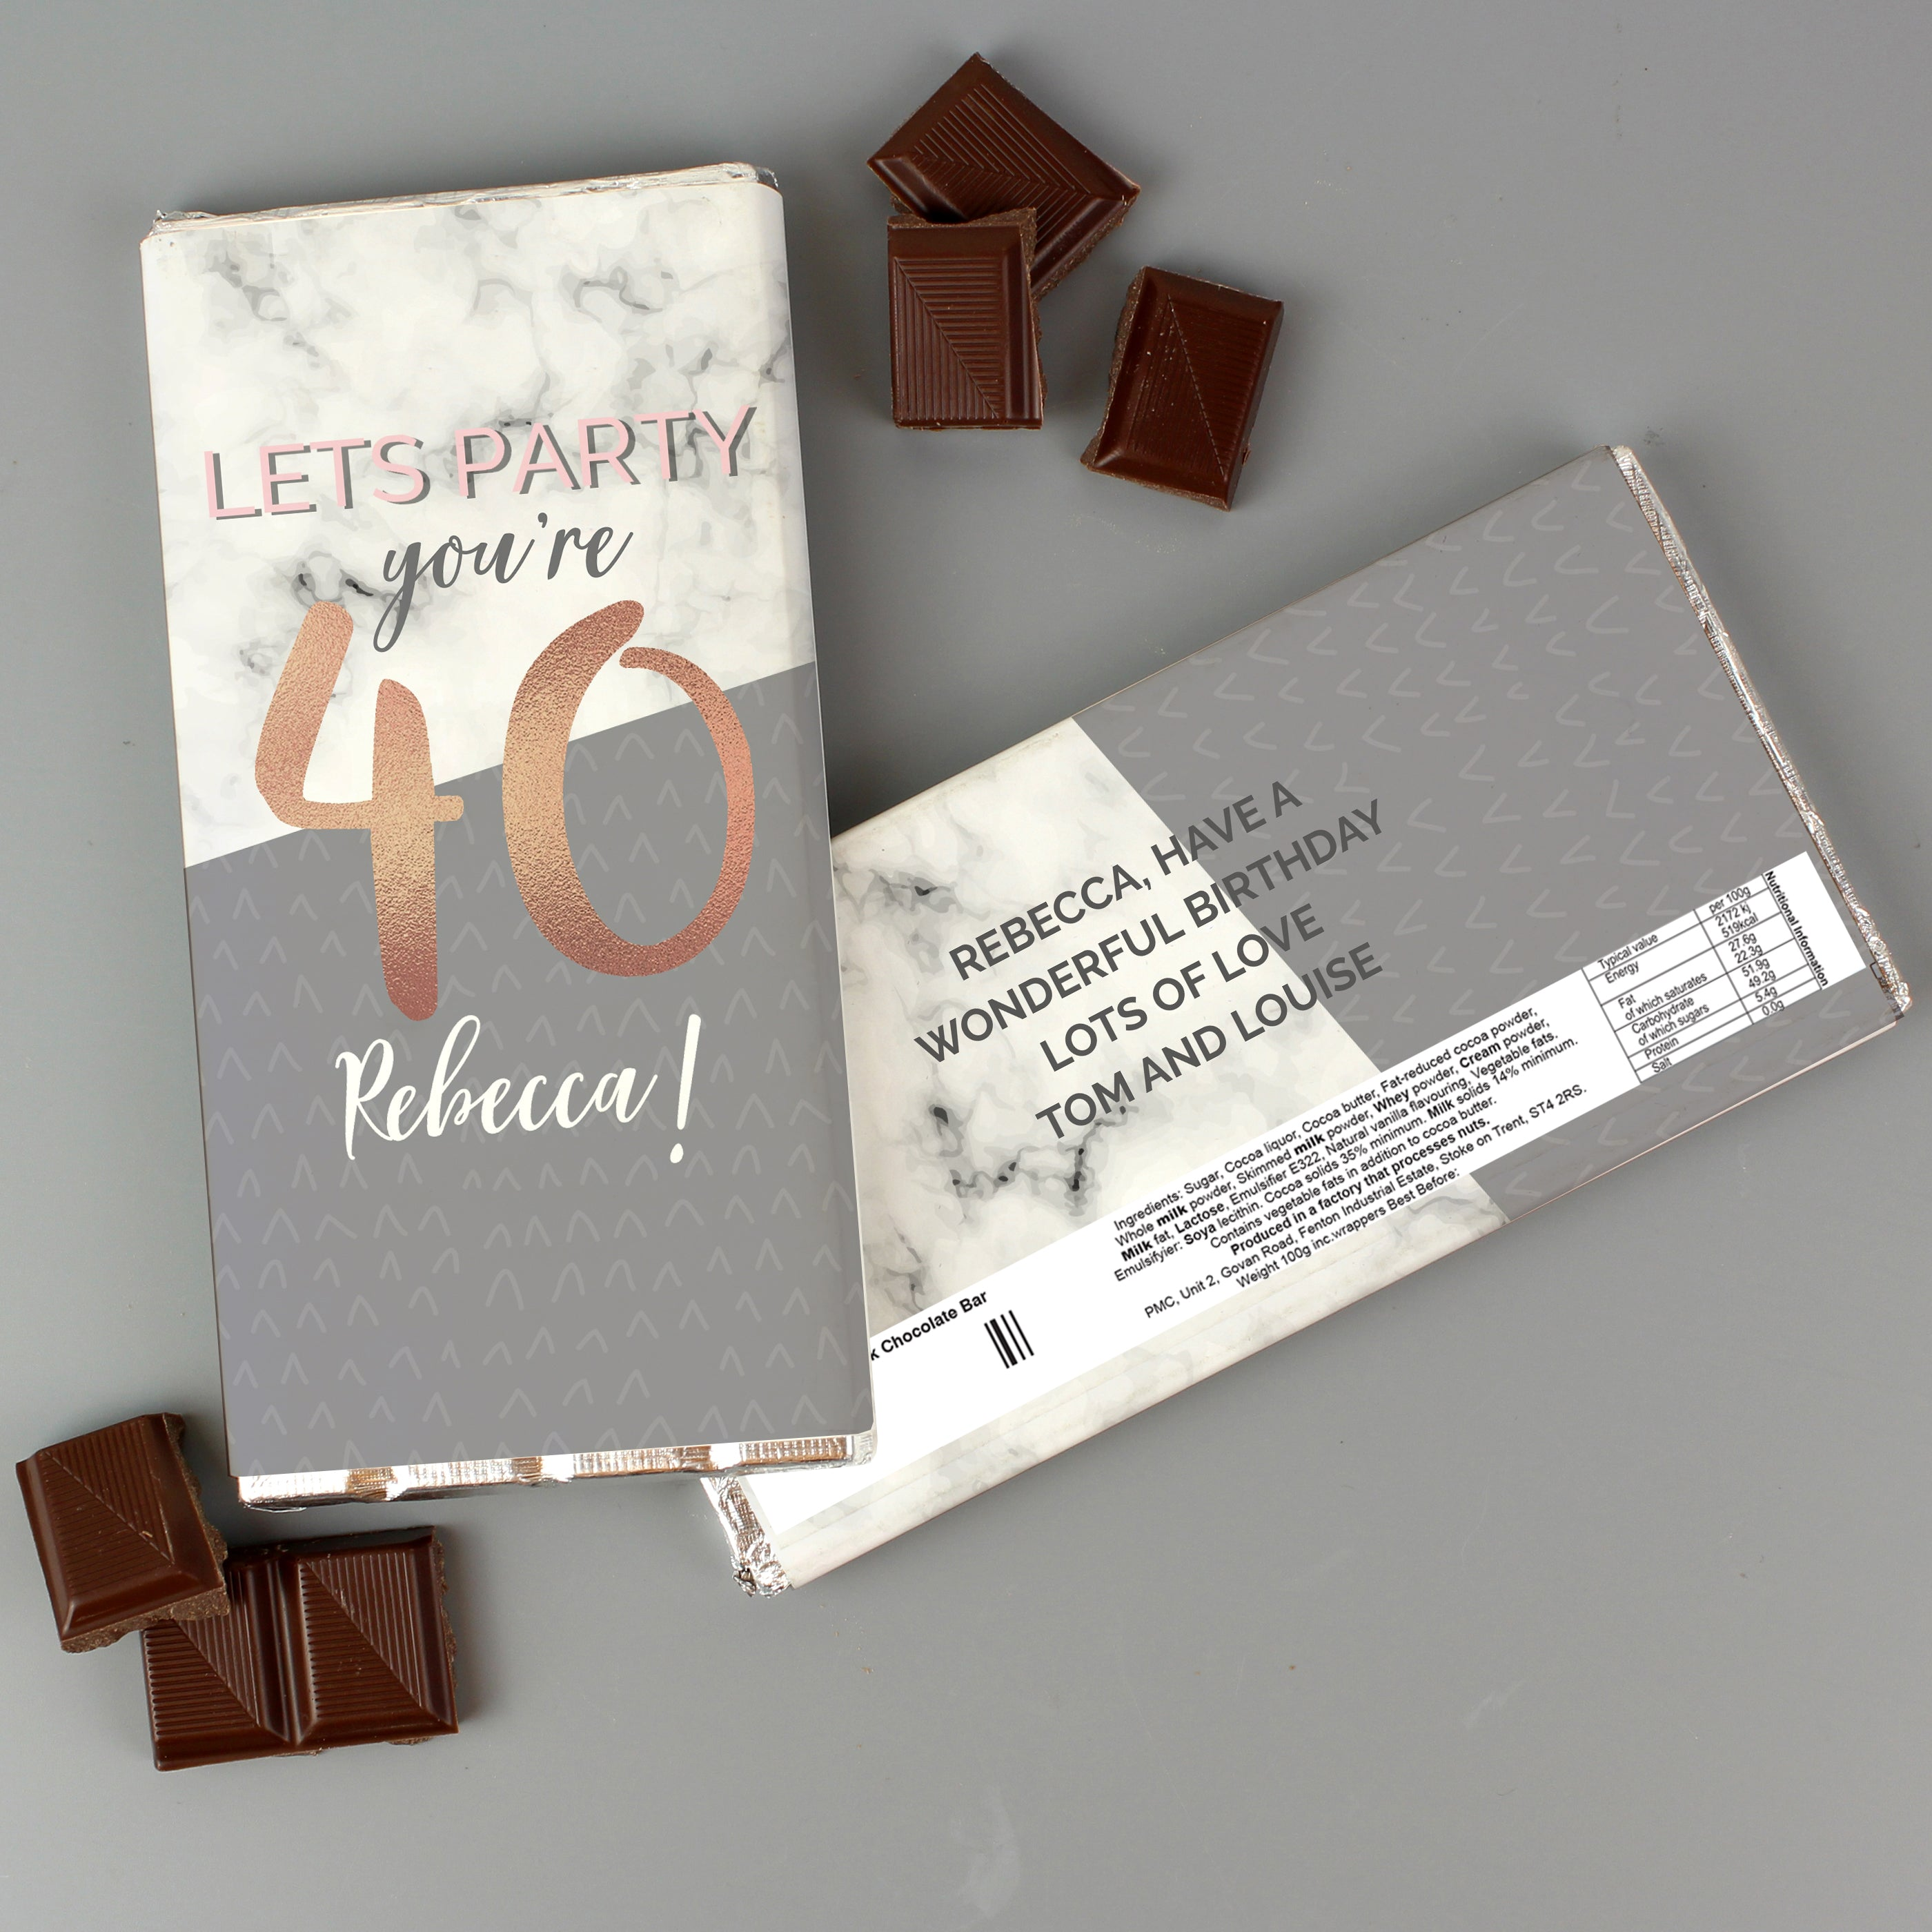 Personalised Birthday Marble and Rose Gold Chocolate Bar, Food Items by Low Cost Gifts